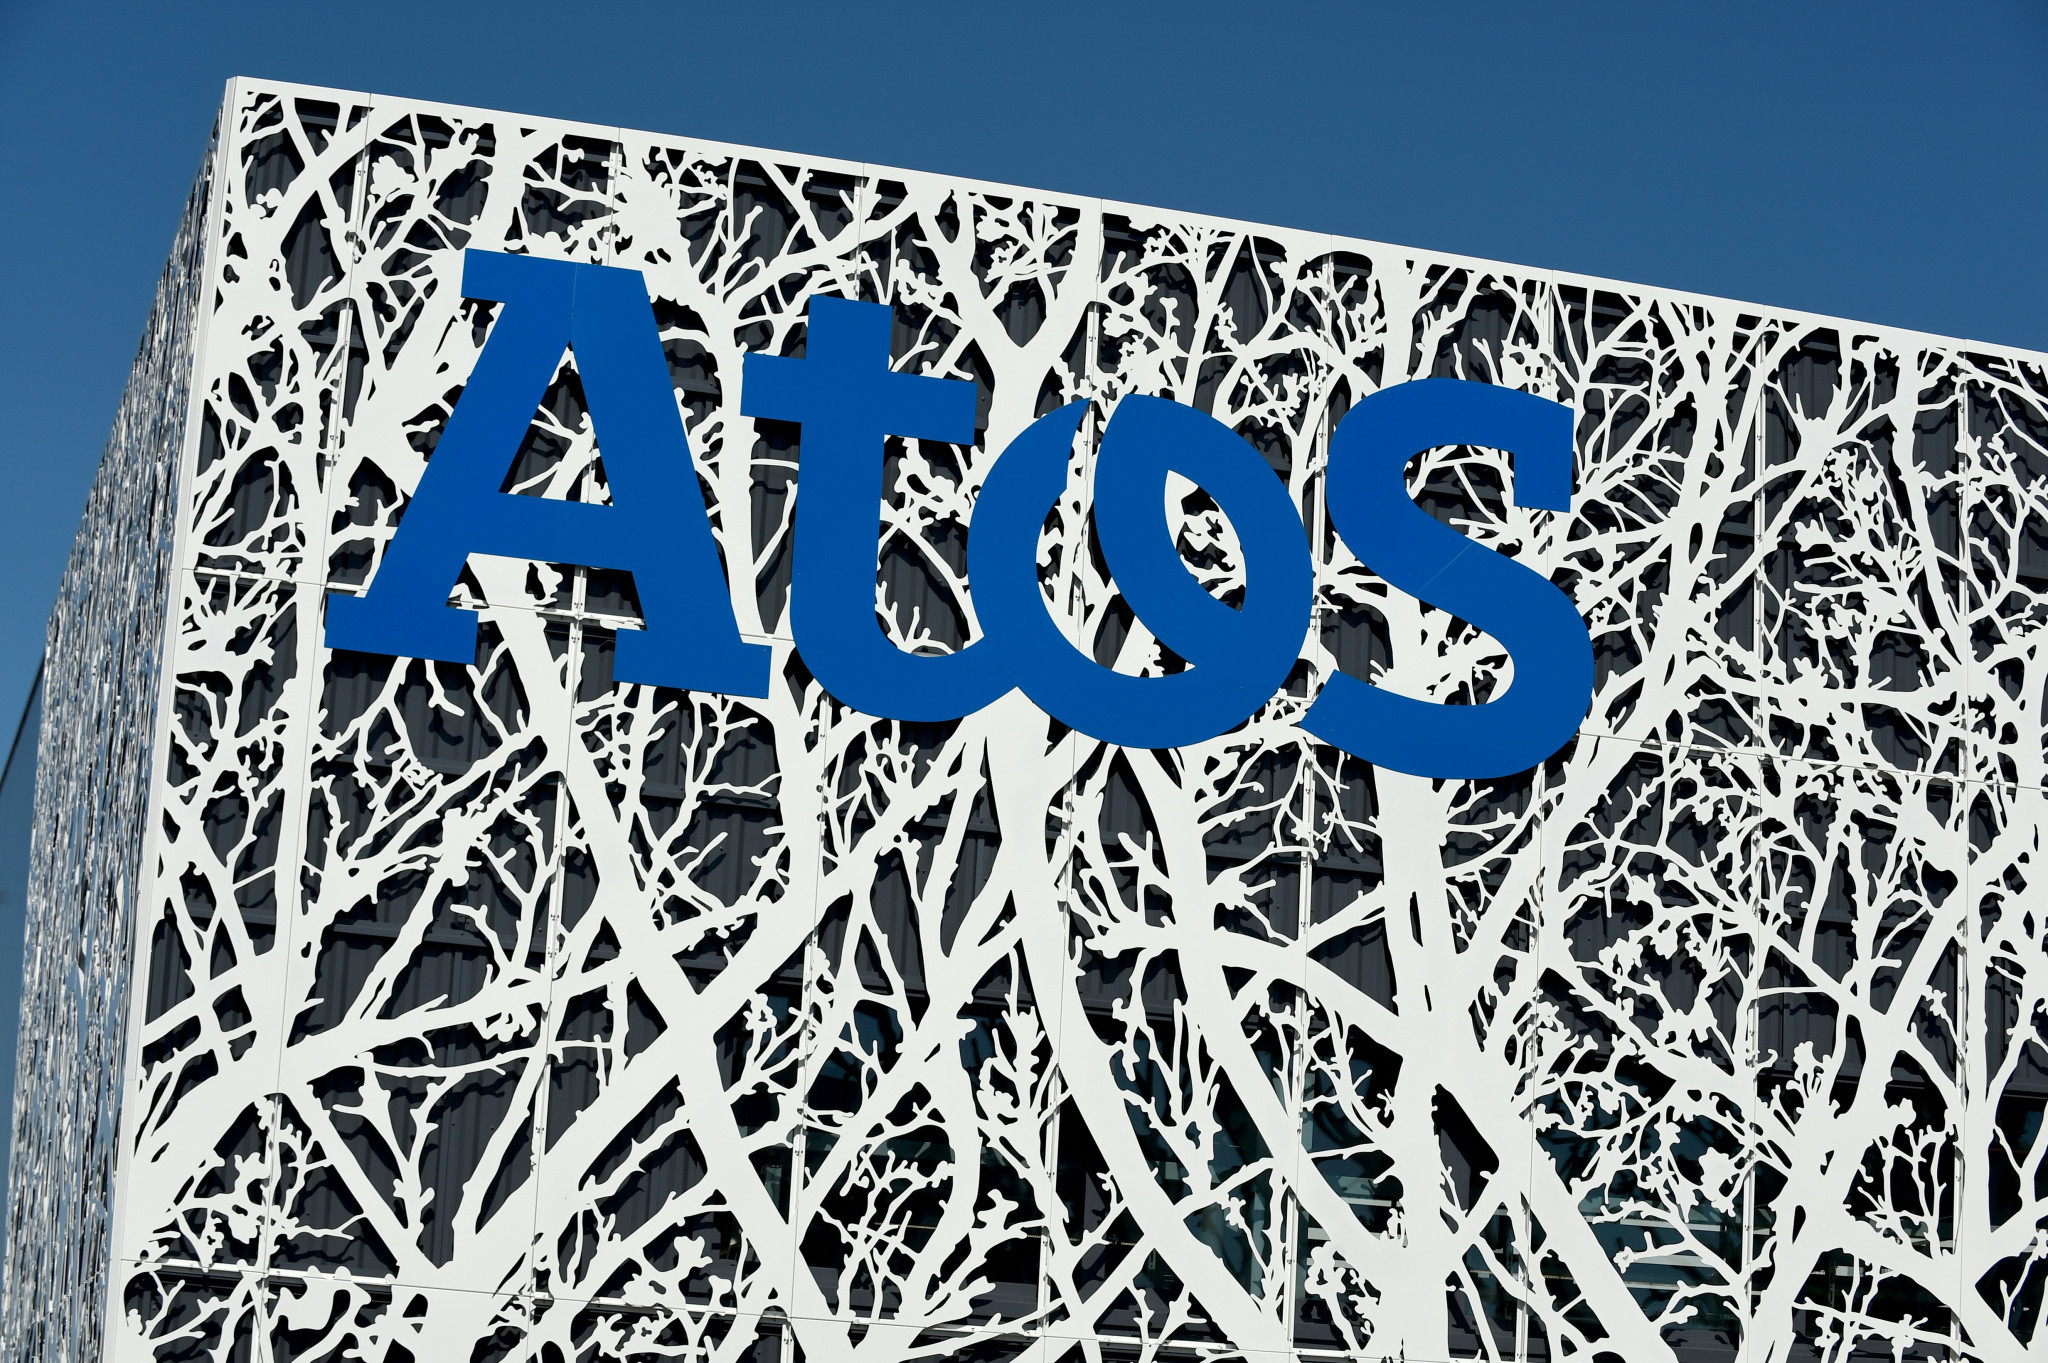 """TOP sponsor Atos boasts helping make Tokyo 2020 """"flawless event"""""""